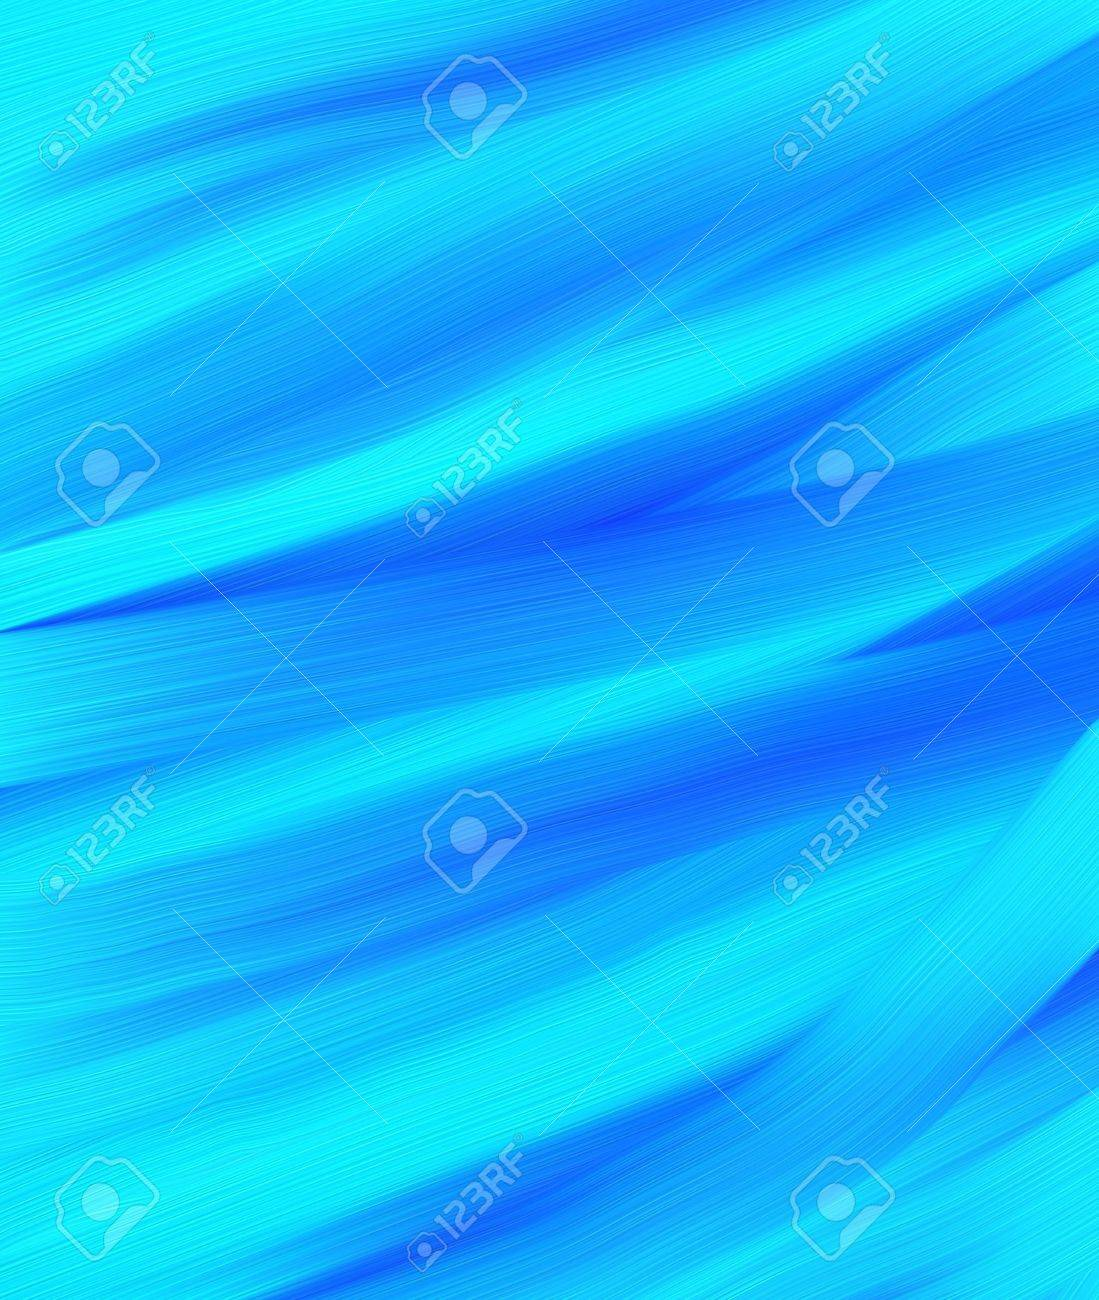 Light Blue Paint Light Blue Paint Best 25 Light Blue Paints Ideas Only On